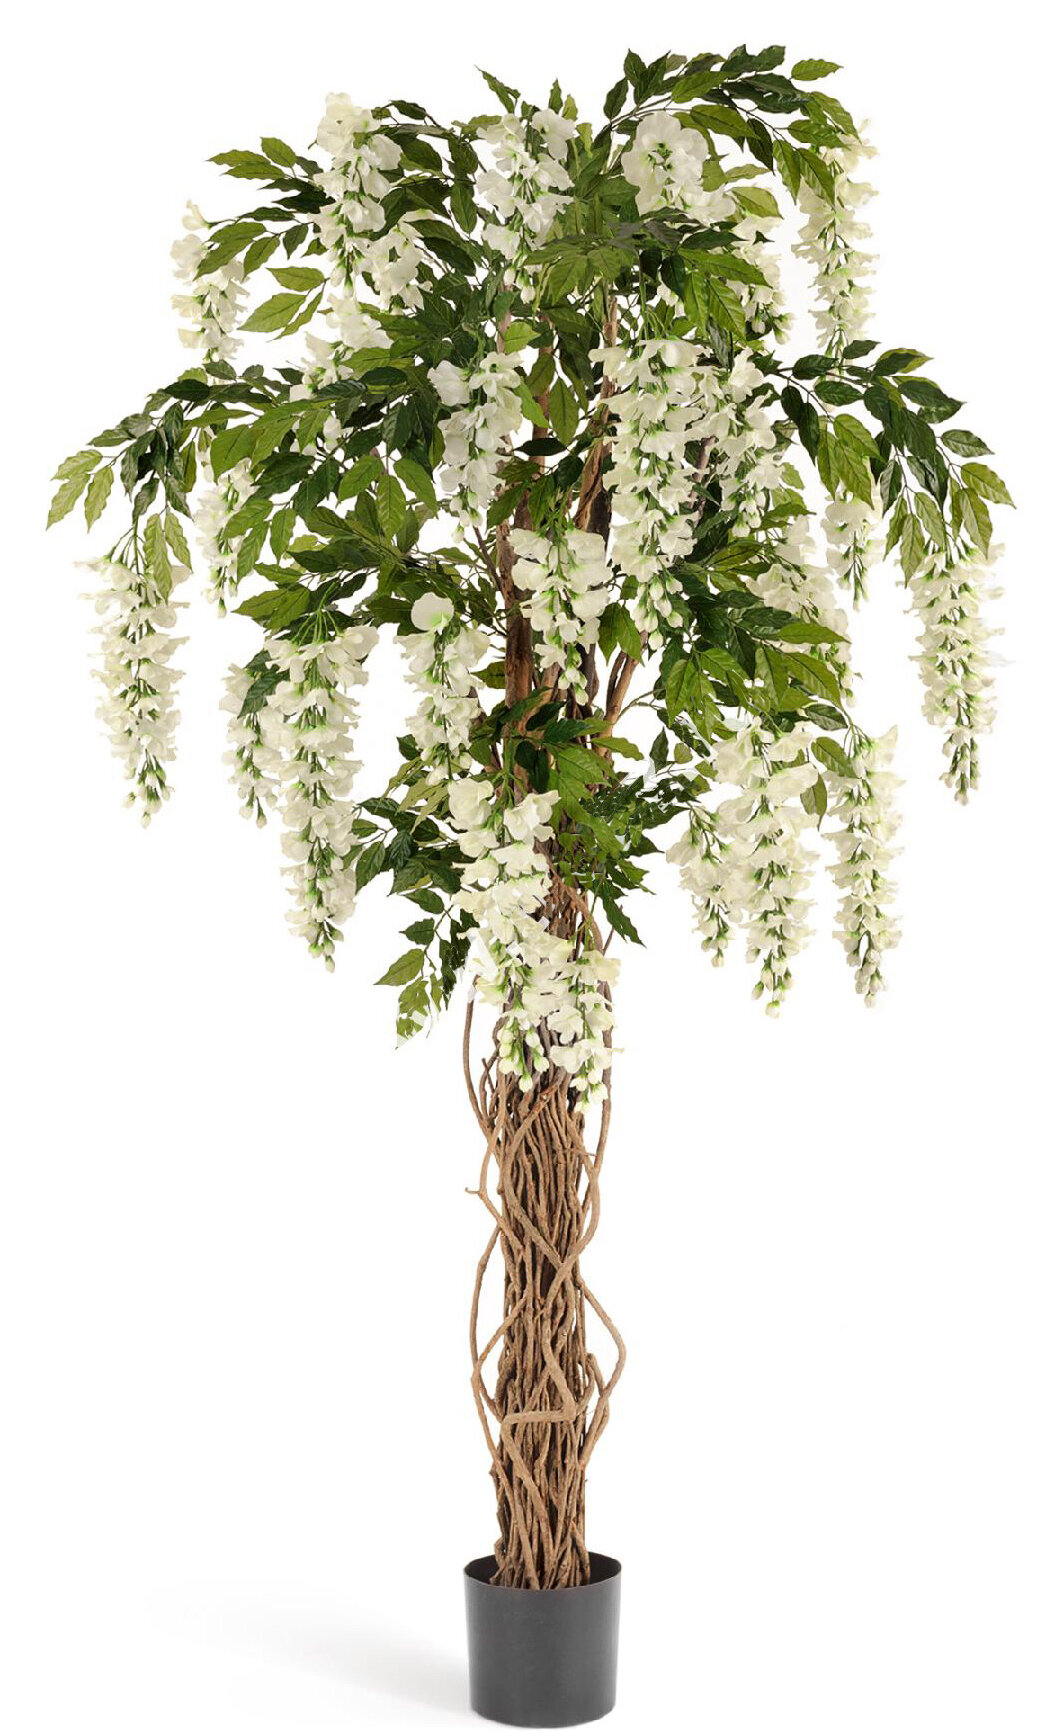 Gracie Oaks Multi Vine Trunk Wisteria Silk Flowering Tree In Pot